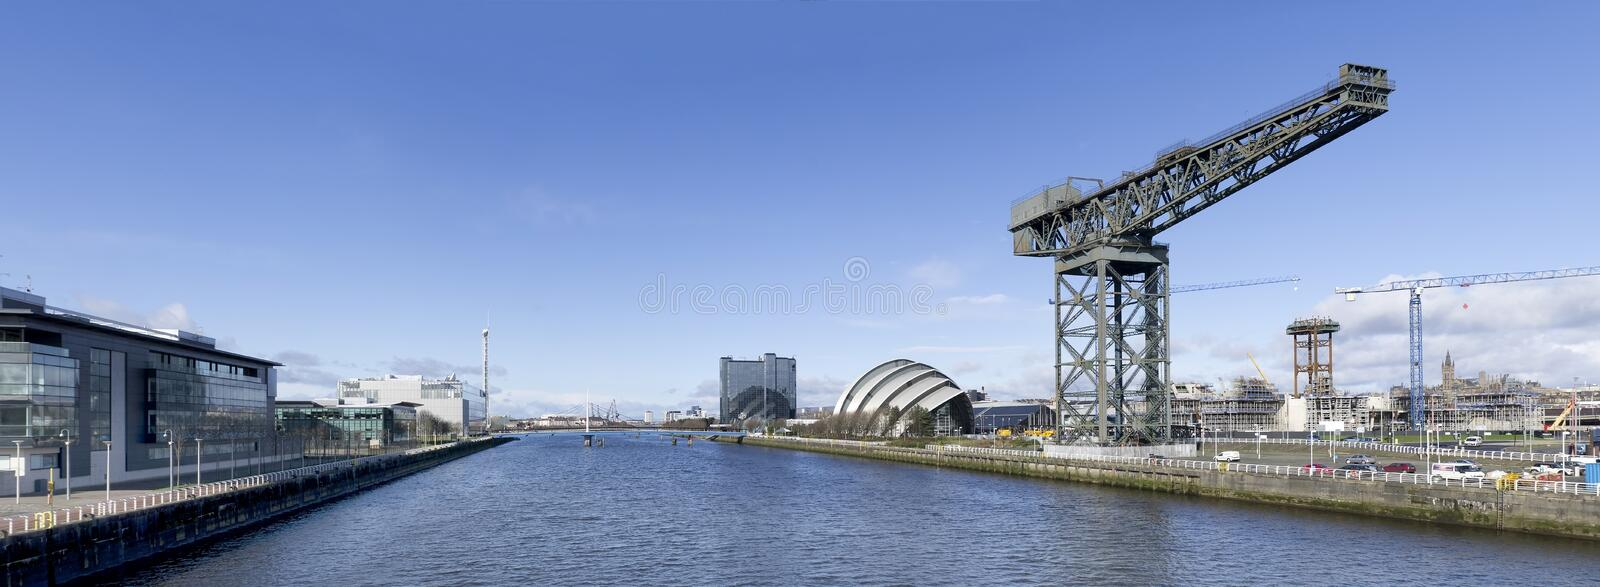 Download Panorama Of River Clyde In Glasgow Stock Image - Image: 23692469